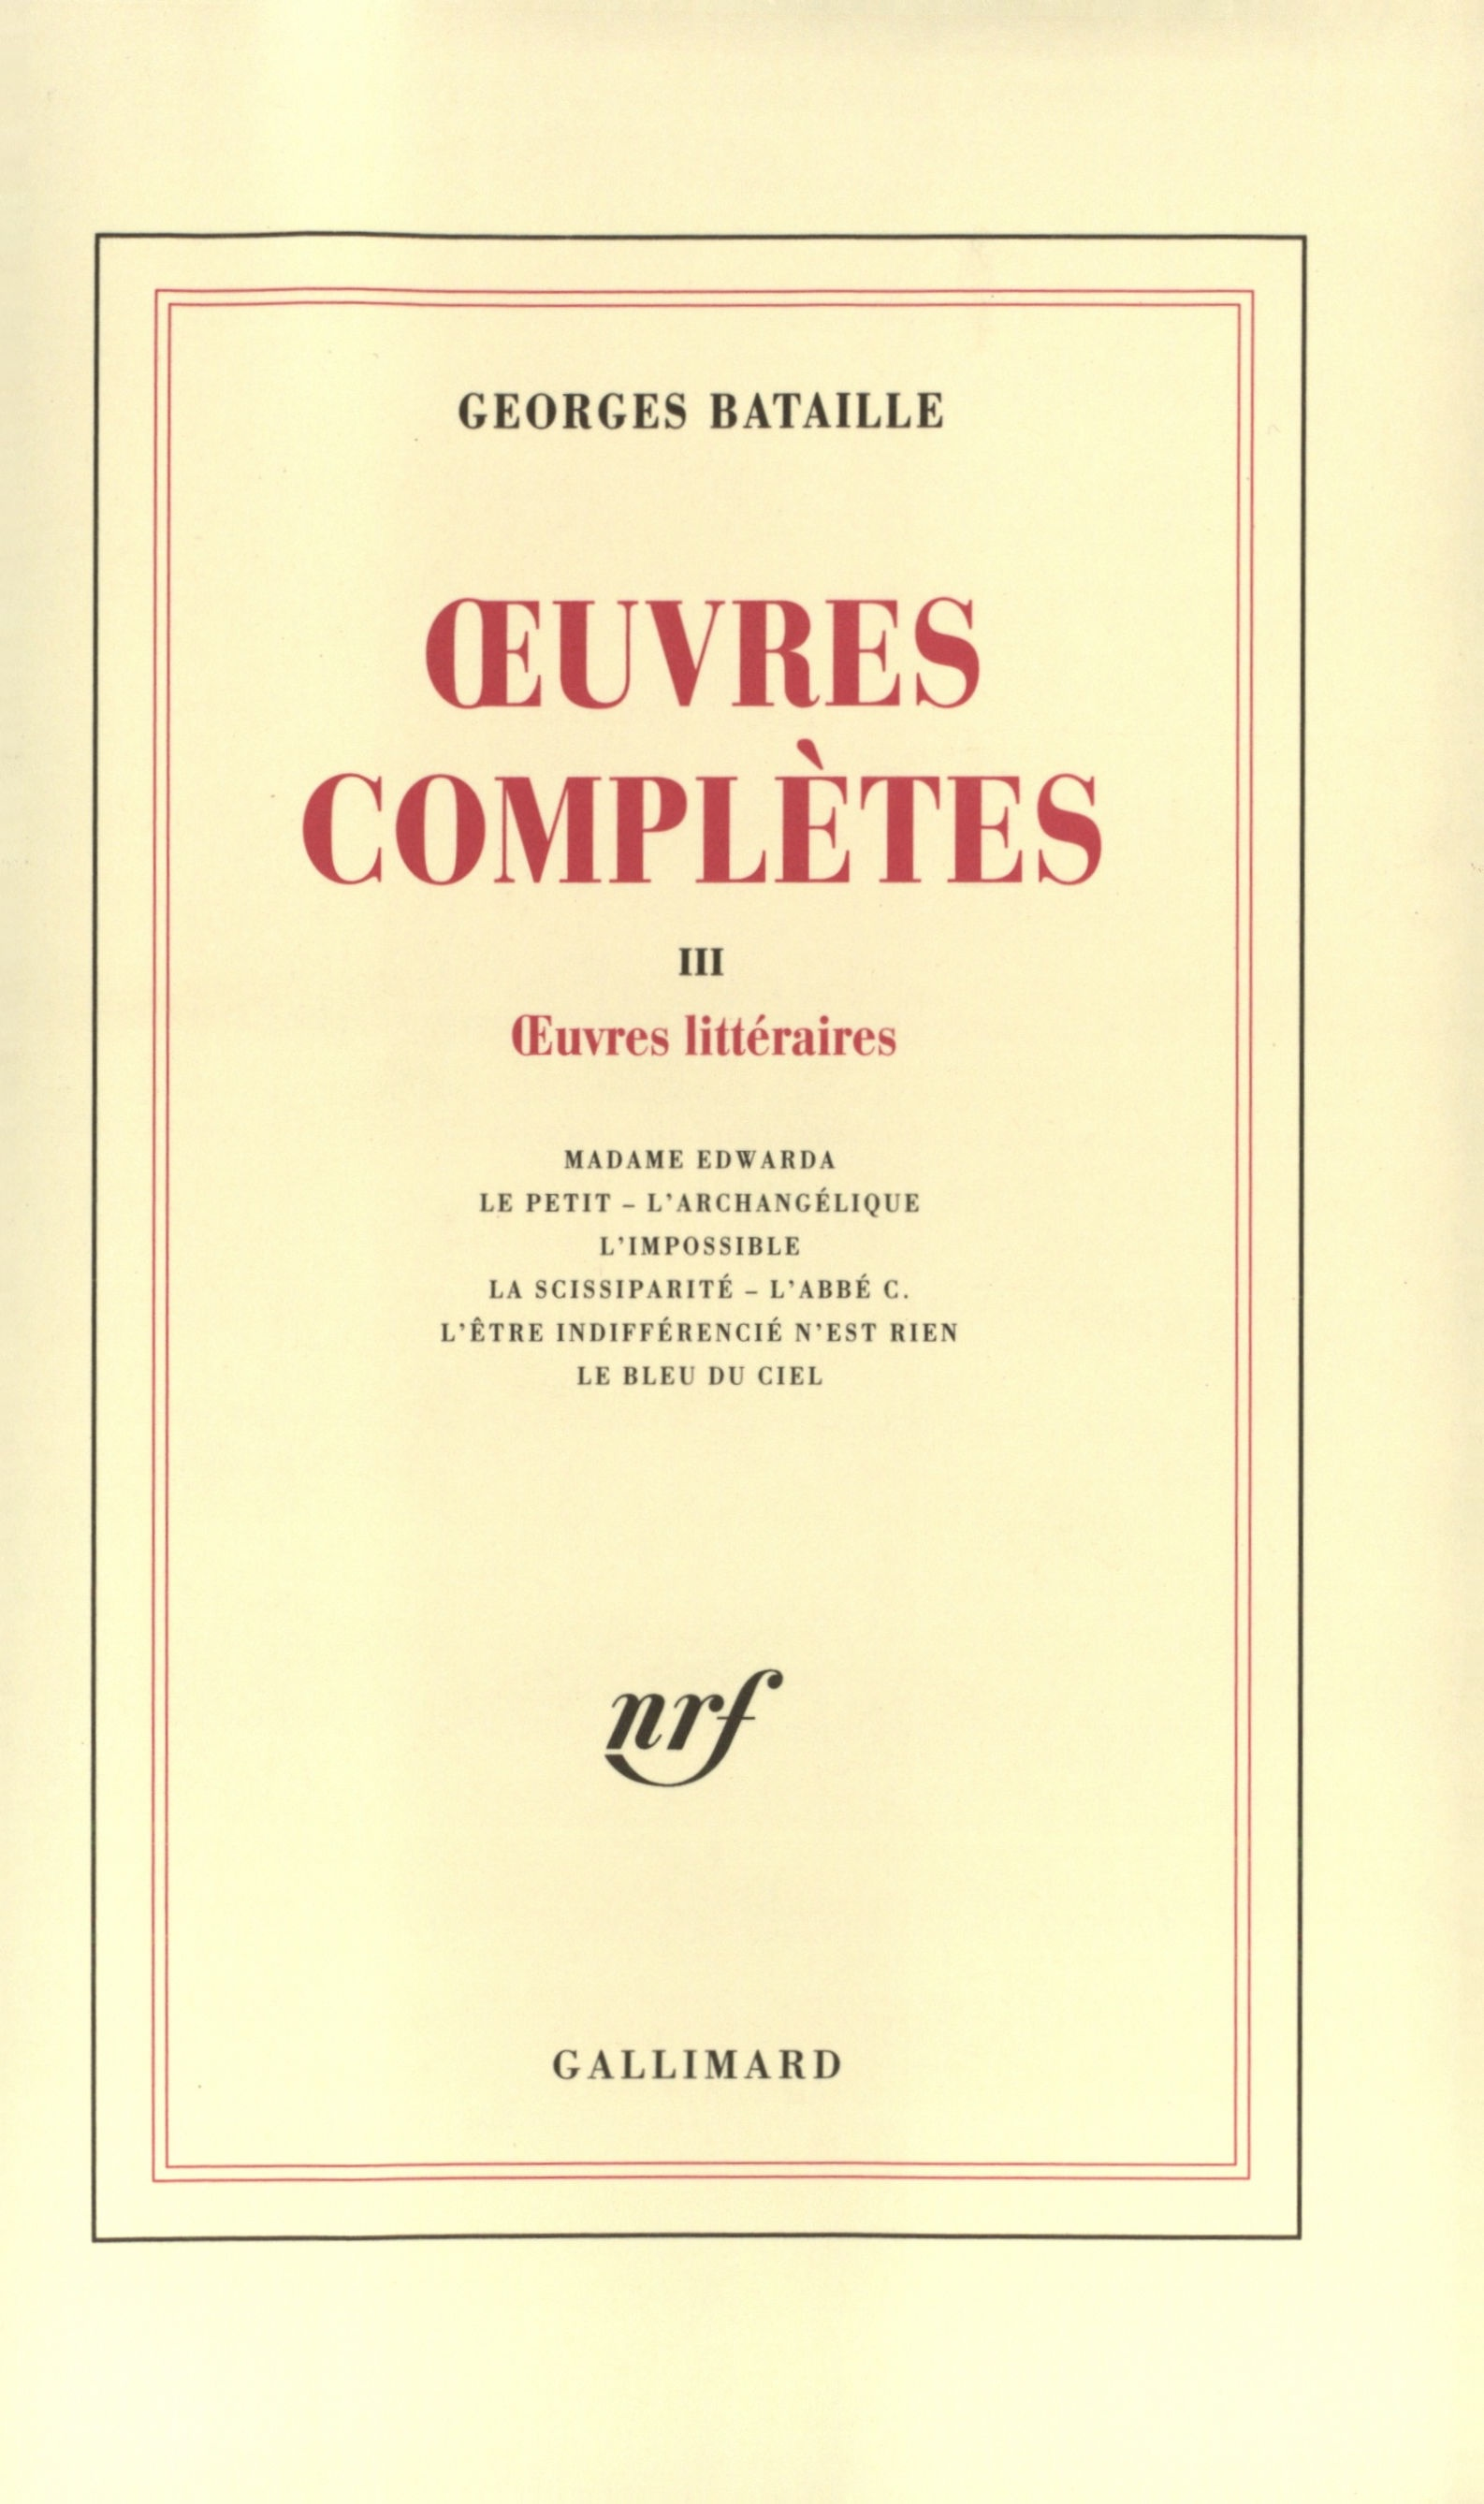 Œuvres complètes tome 3, ed. Cover art